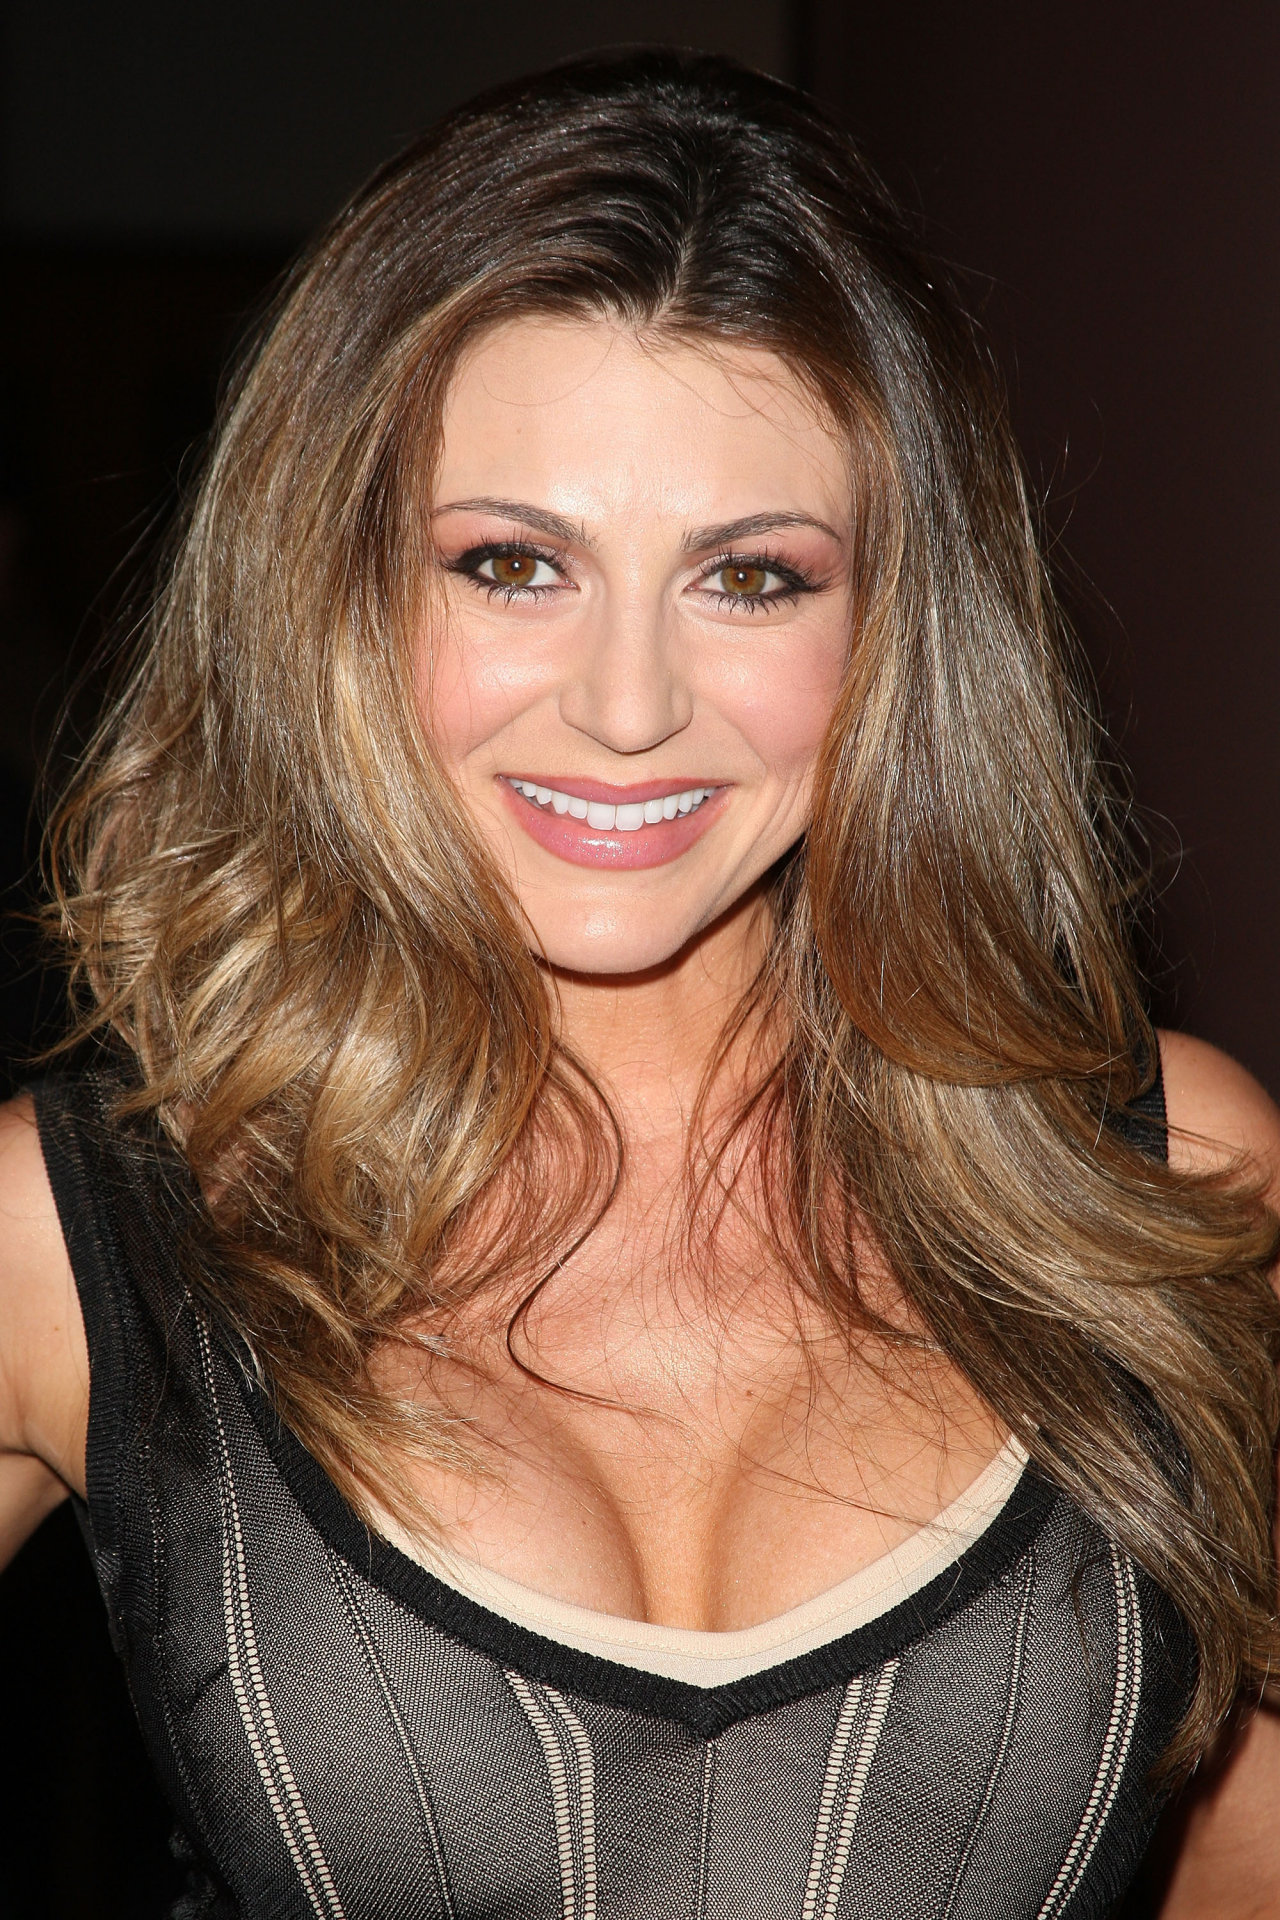 cerina vincentcerina vincent getty images, cerina vincent as maya, cerina vincent, cerina vincent instagram, cerina vincent power rangers, cerina vincent facebook, cerina vincent fan site, cerina vincent imdb, cerina vincent twitter, cerina vincent net worth, cerina vincent now